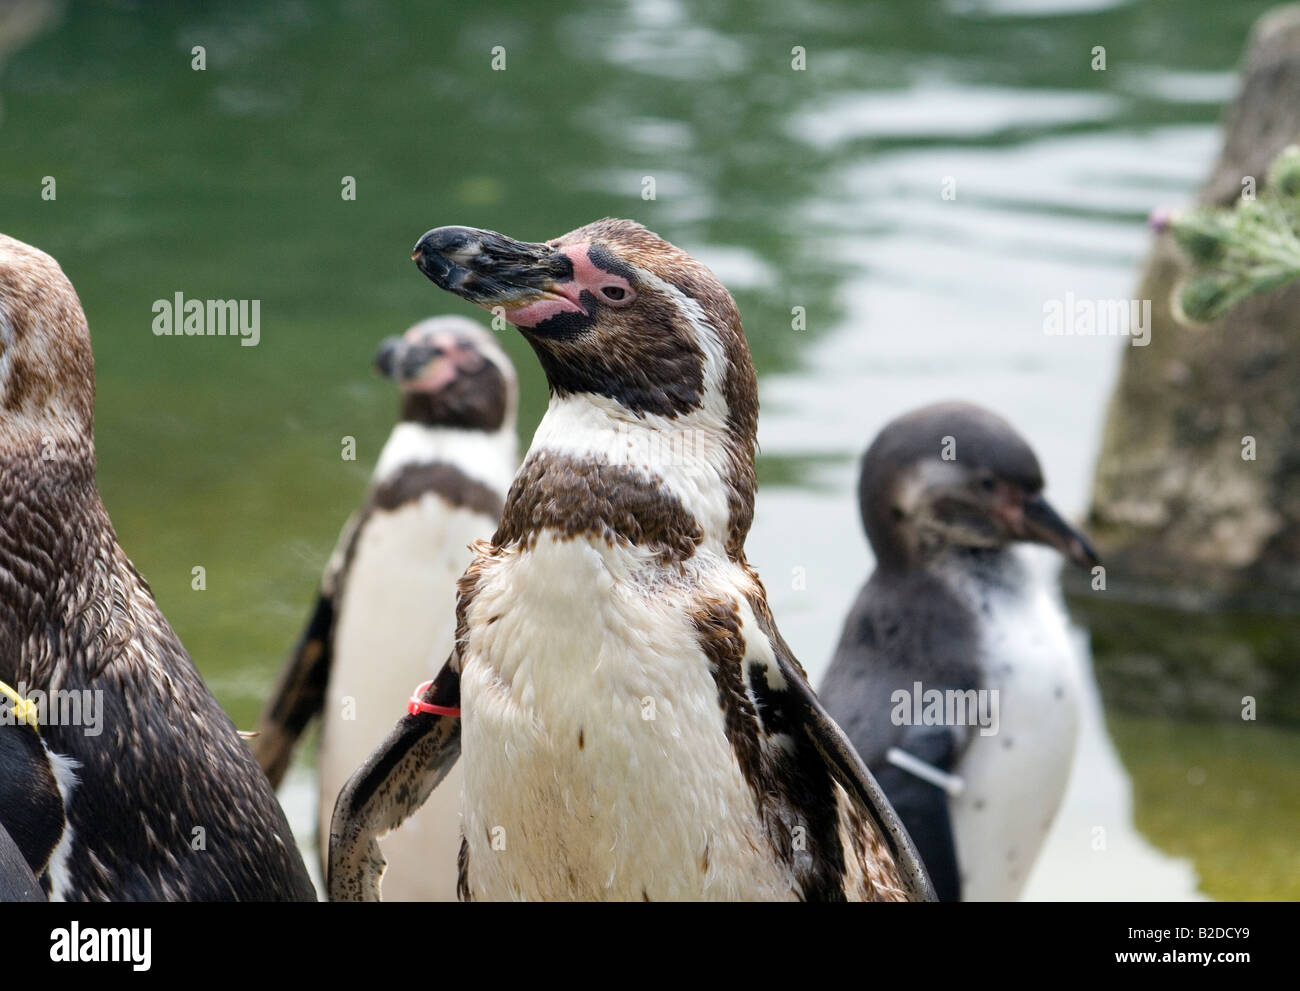 A group of Huboldt Penguins with tags on. - Stock Image